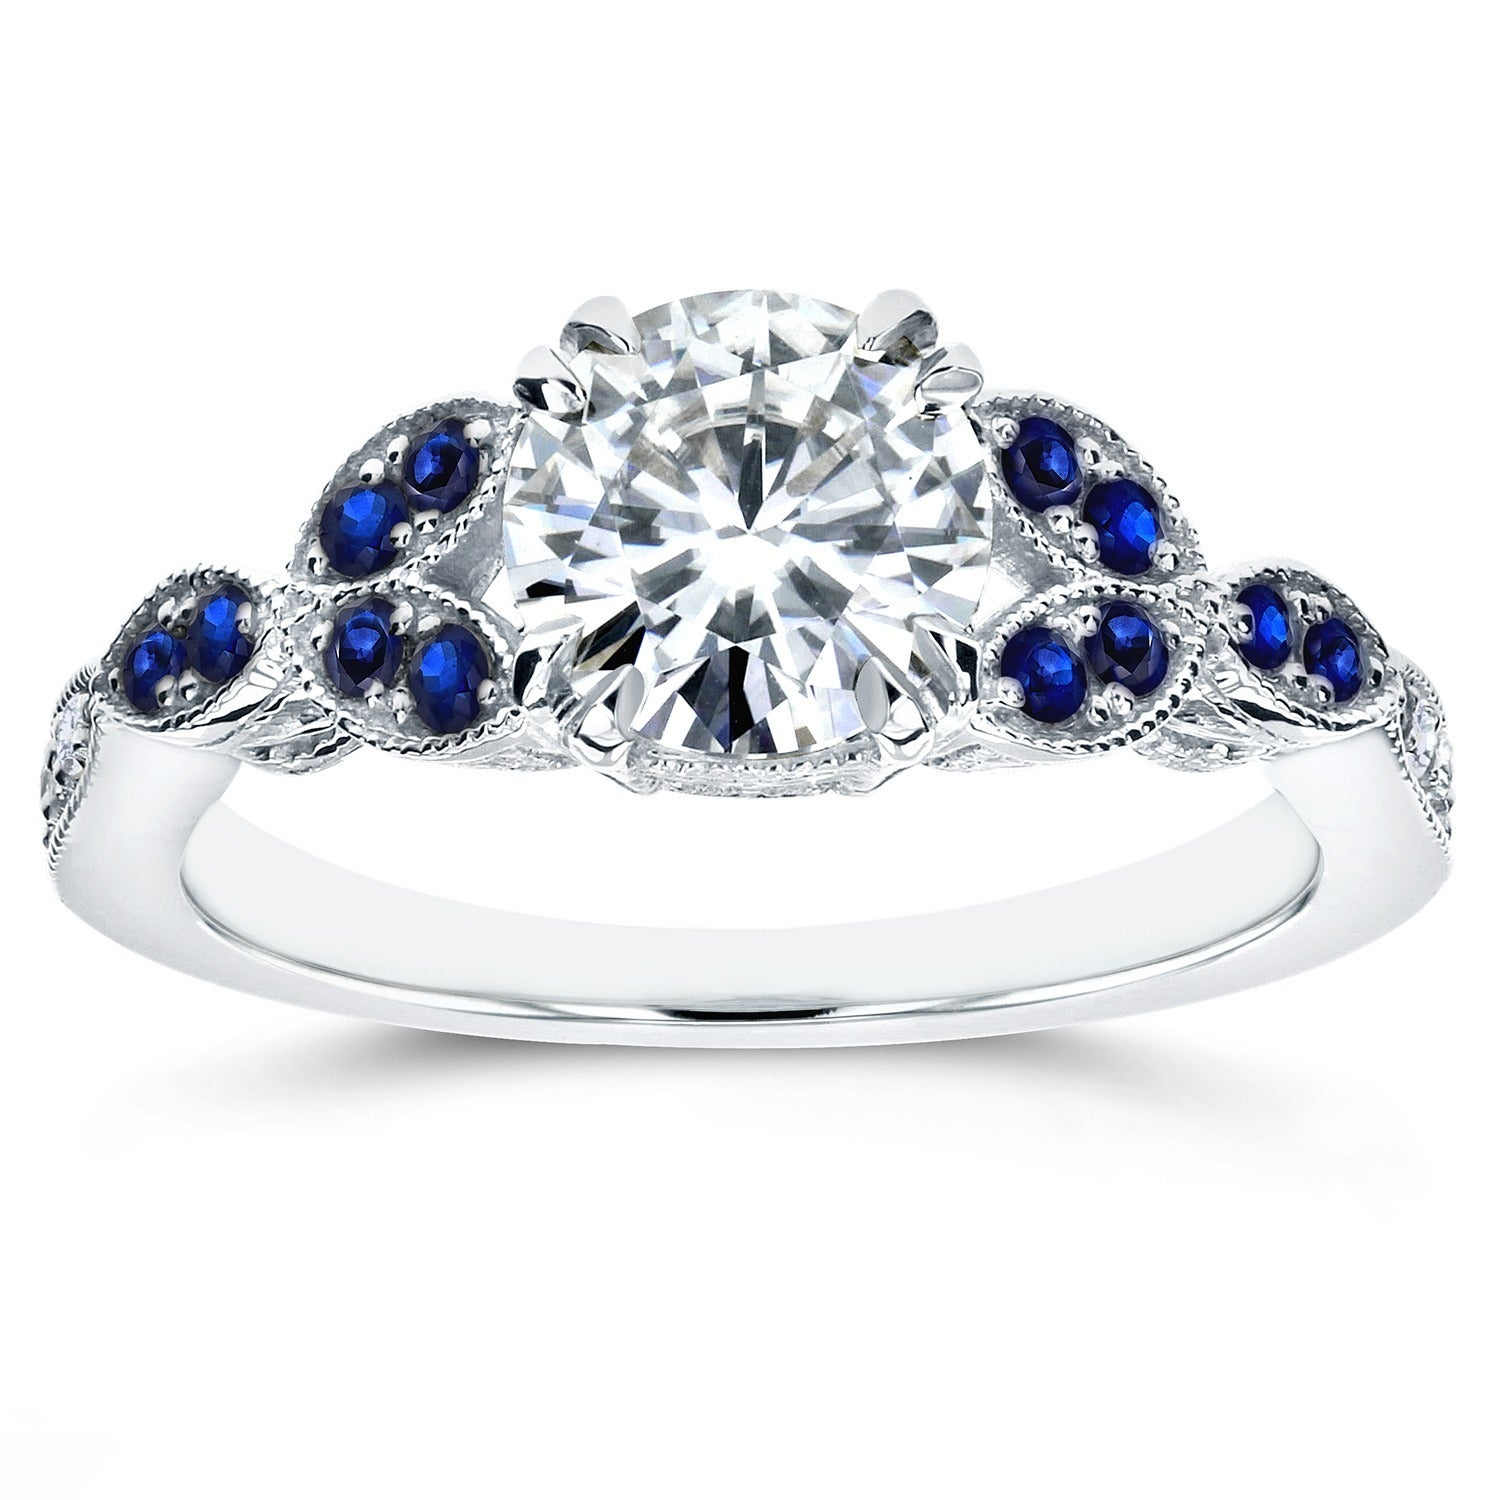 size cut itm sapphire fast blue diamond yellow shipping engagement gold cushion ring worldwide